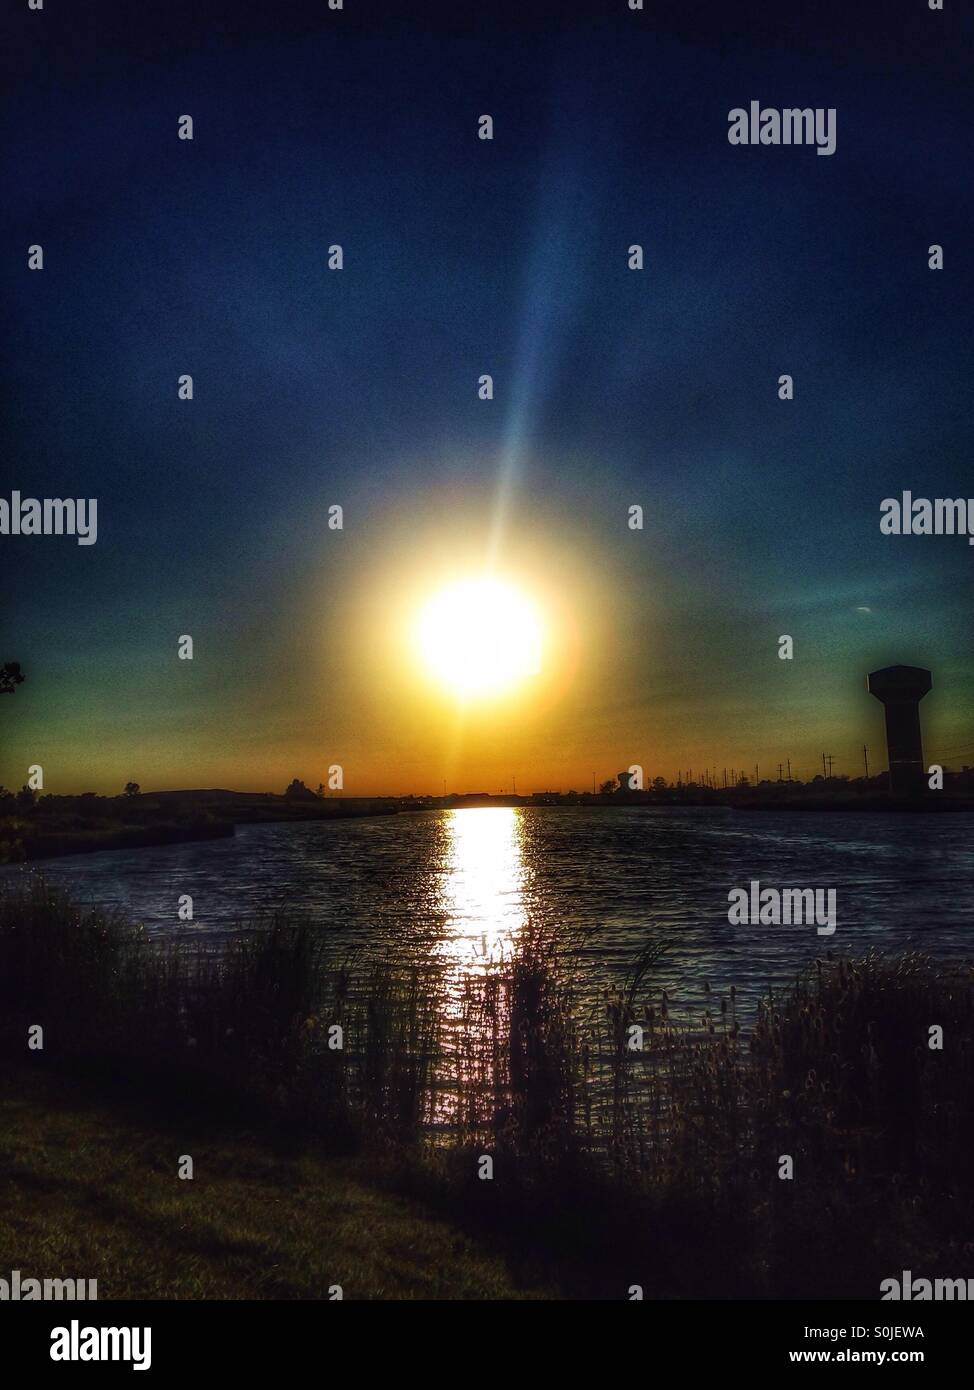 Sunsetting over a lake. - Stock Image